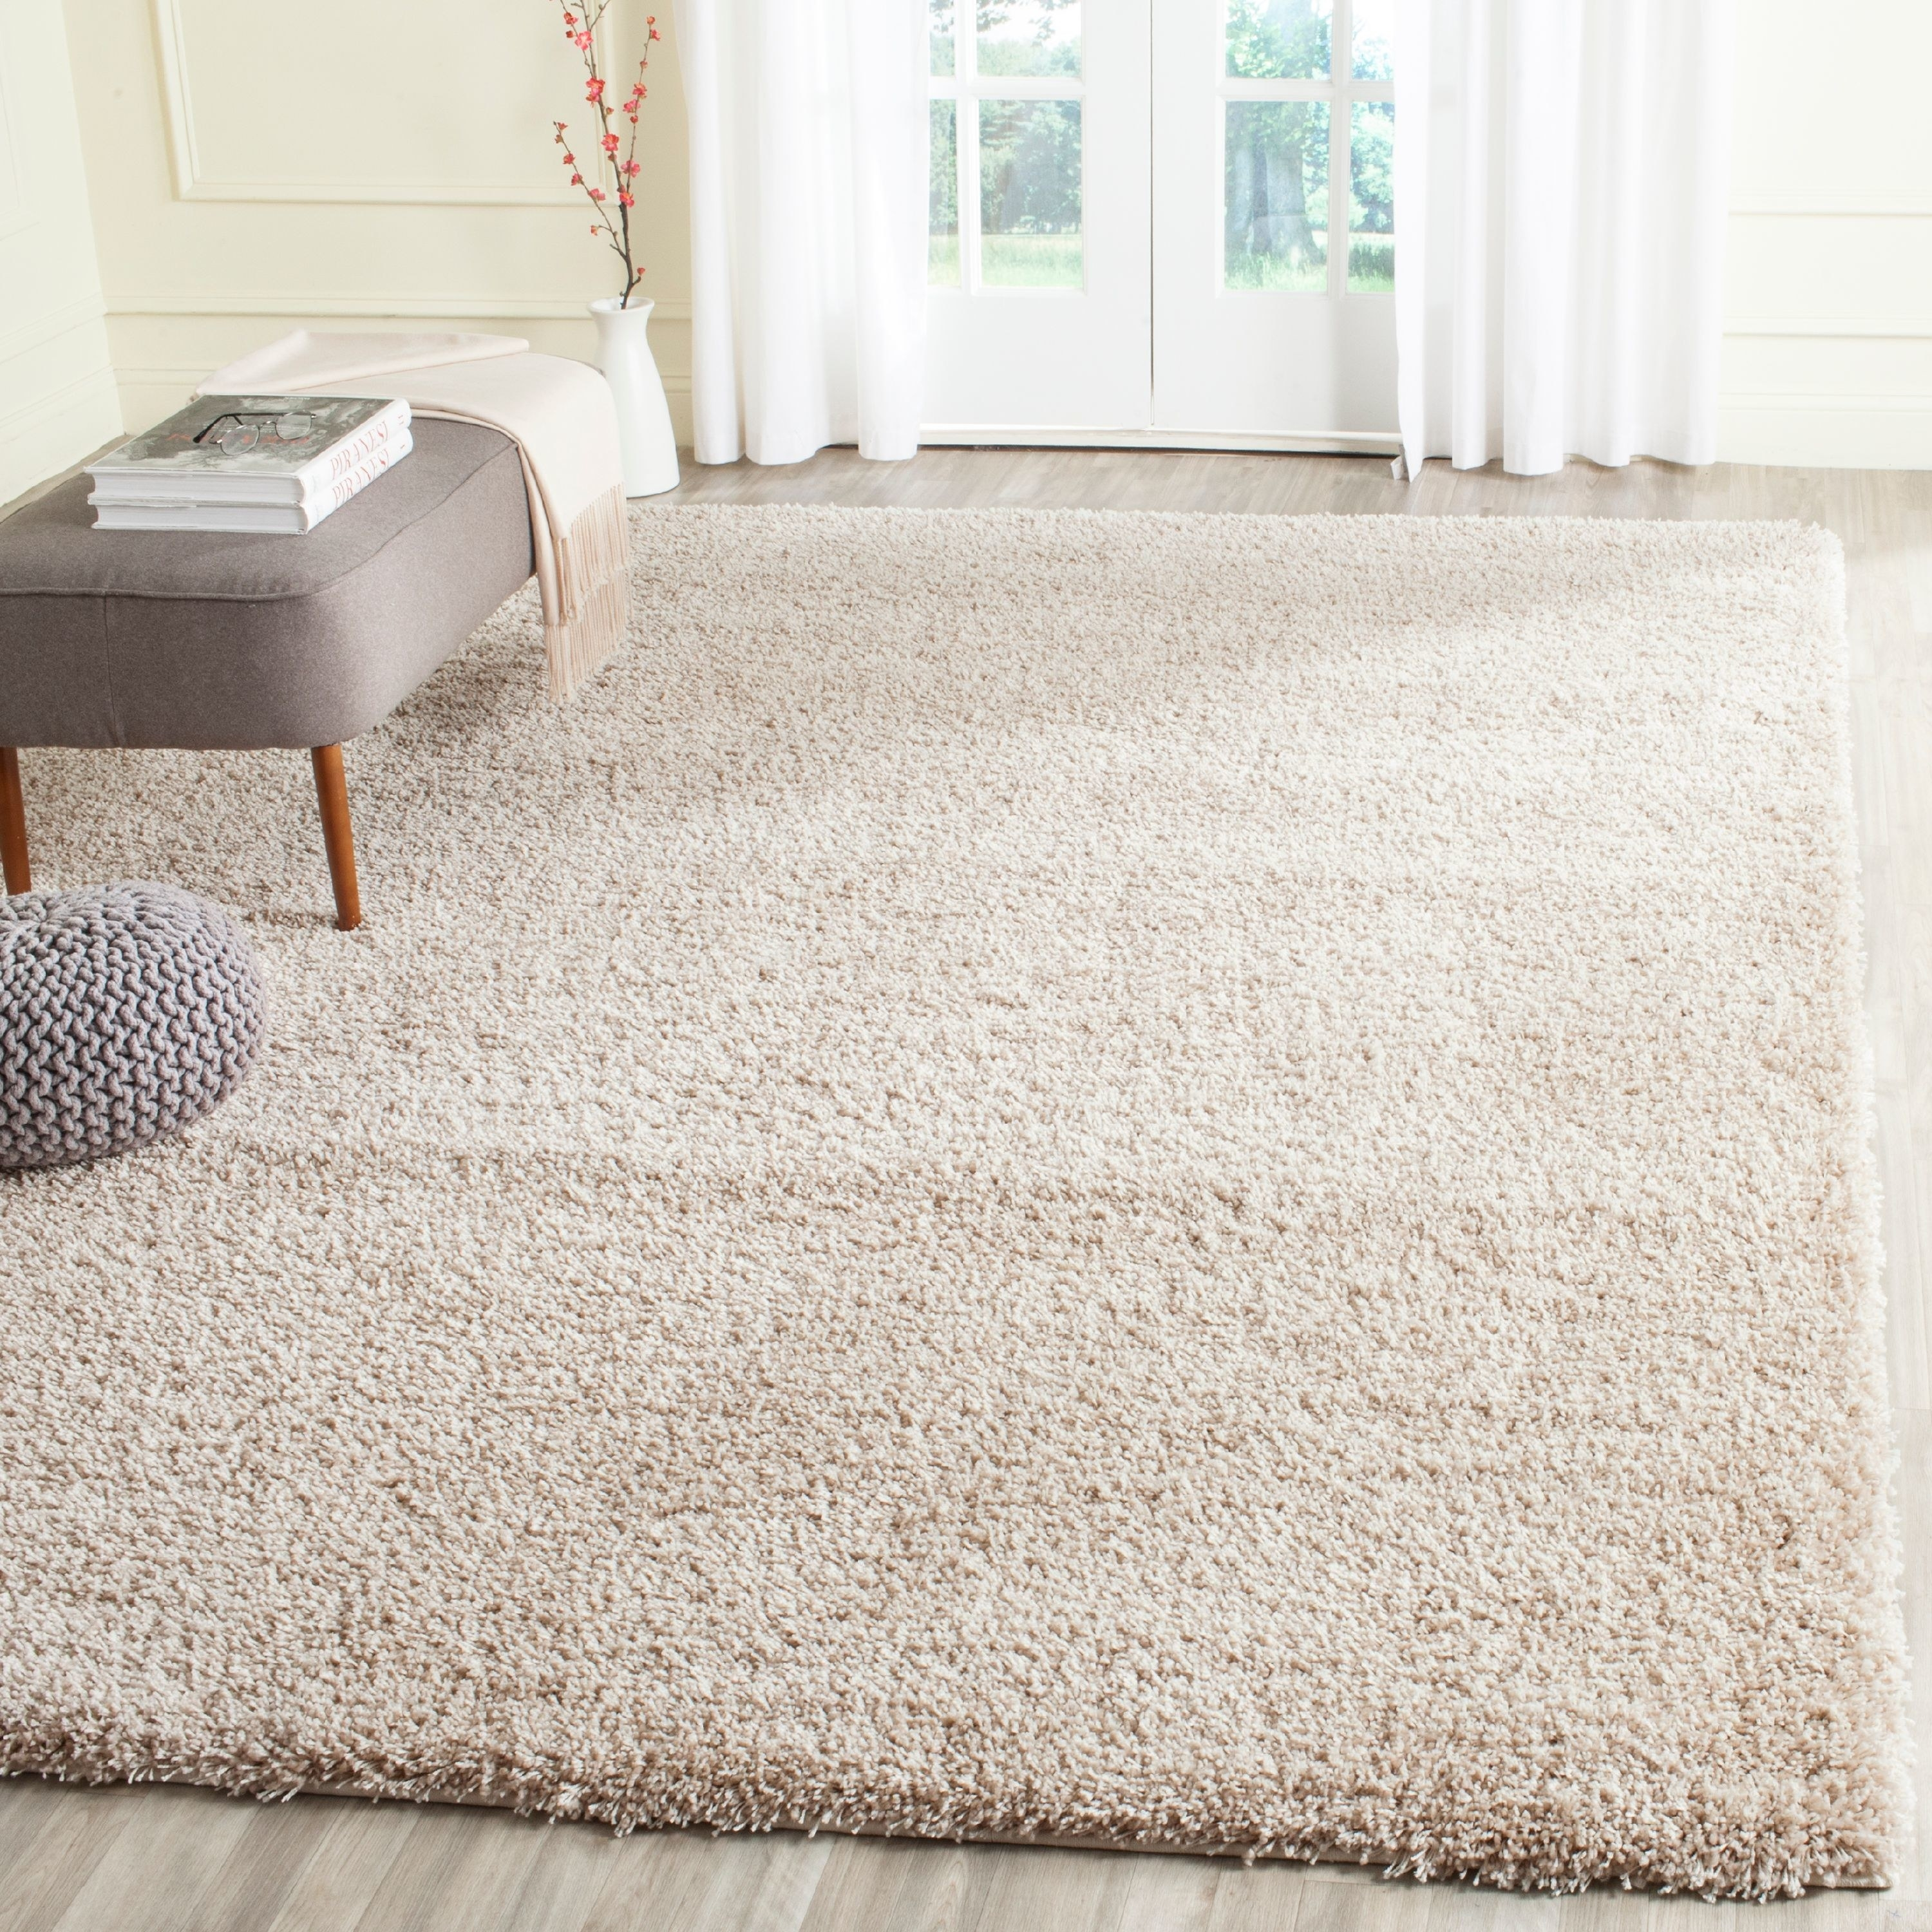 The area rug laid out in a room in beige